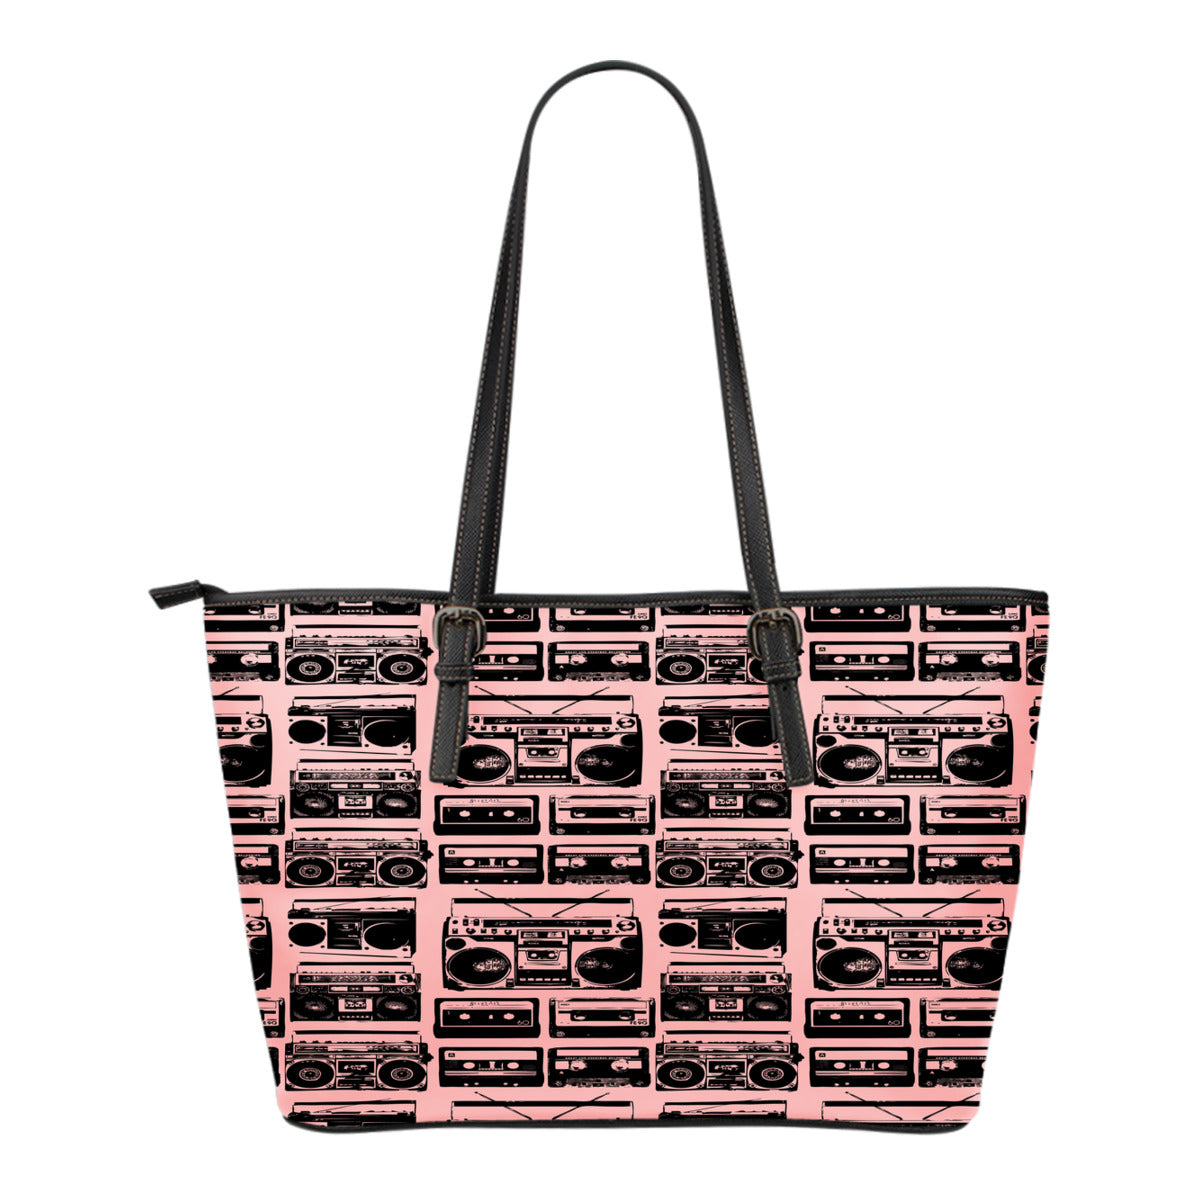 80s Boombox Themed Design C6 Women Small Leather Tote Bag